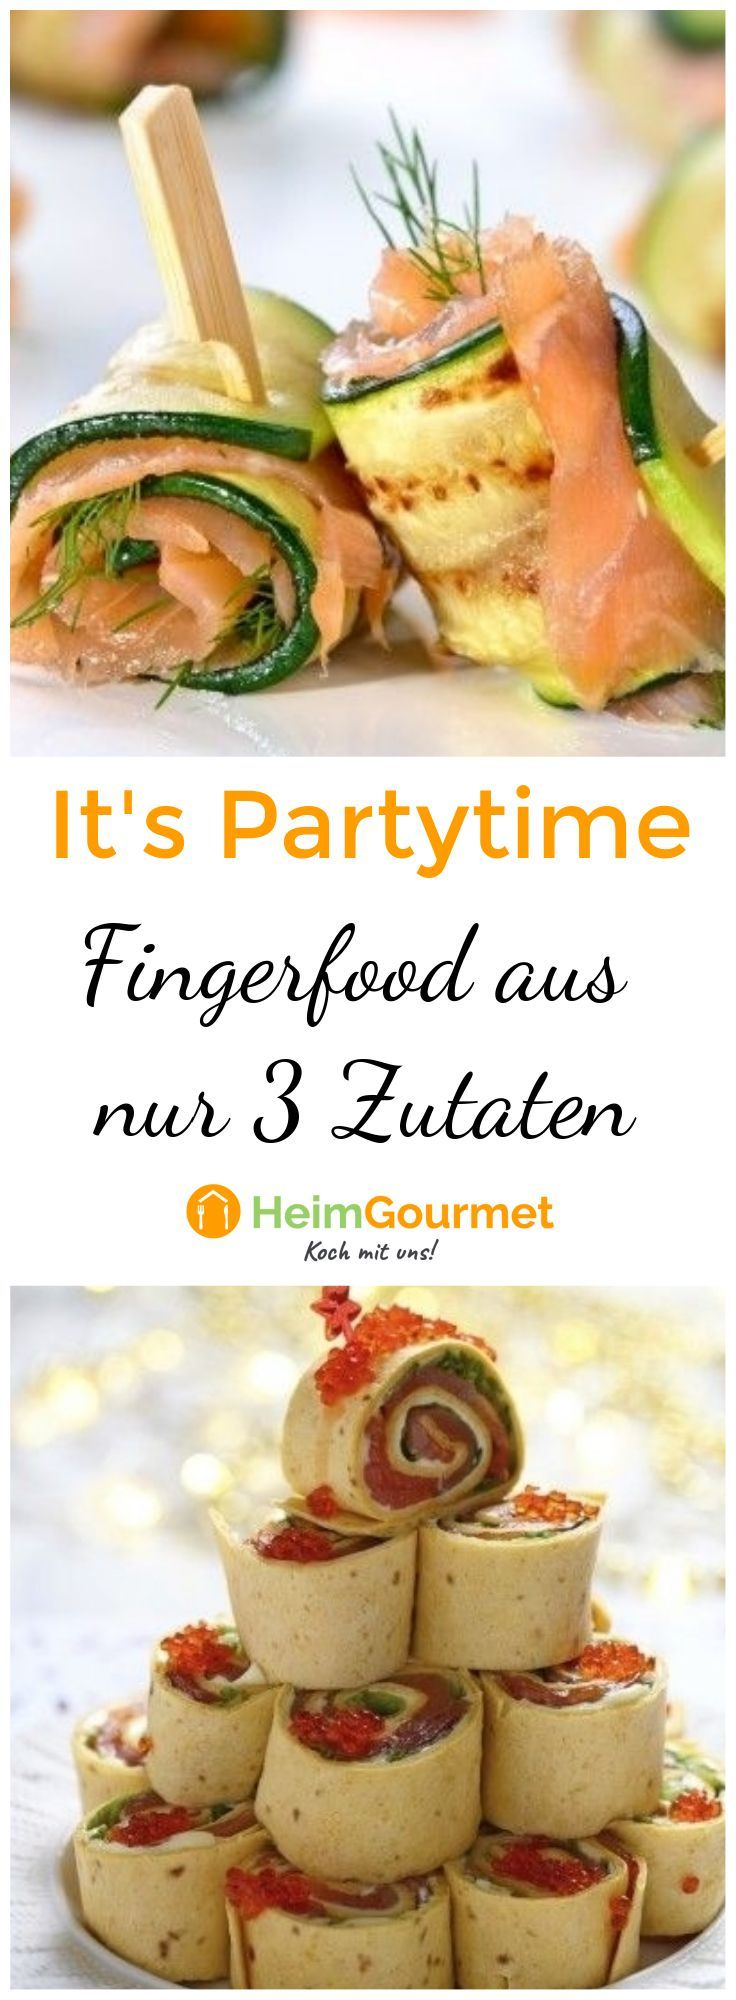 Photo of It's PARTYTIME: 20 smart FINGERFOOD recipes from just 3 ingredients!